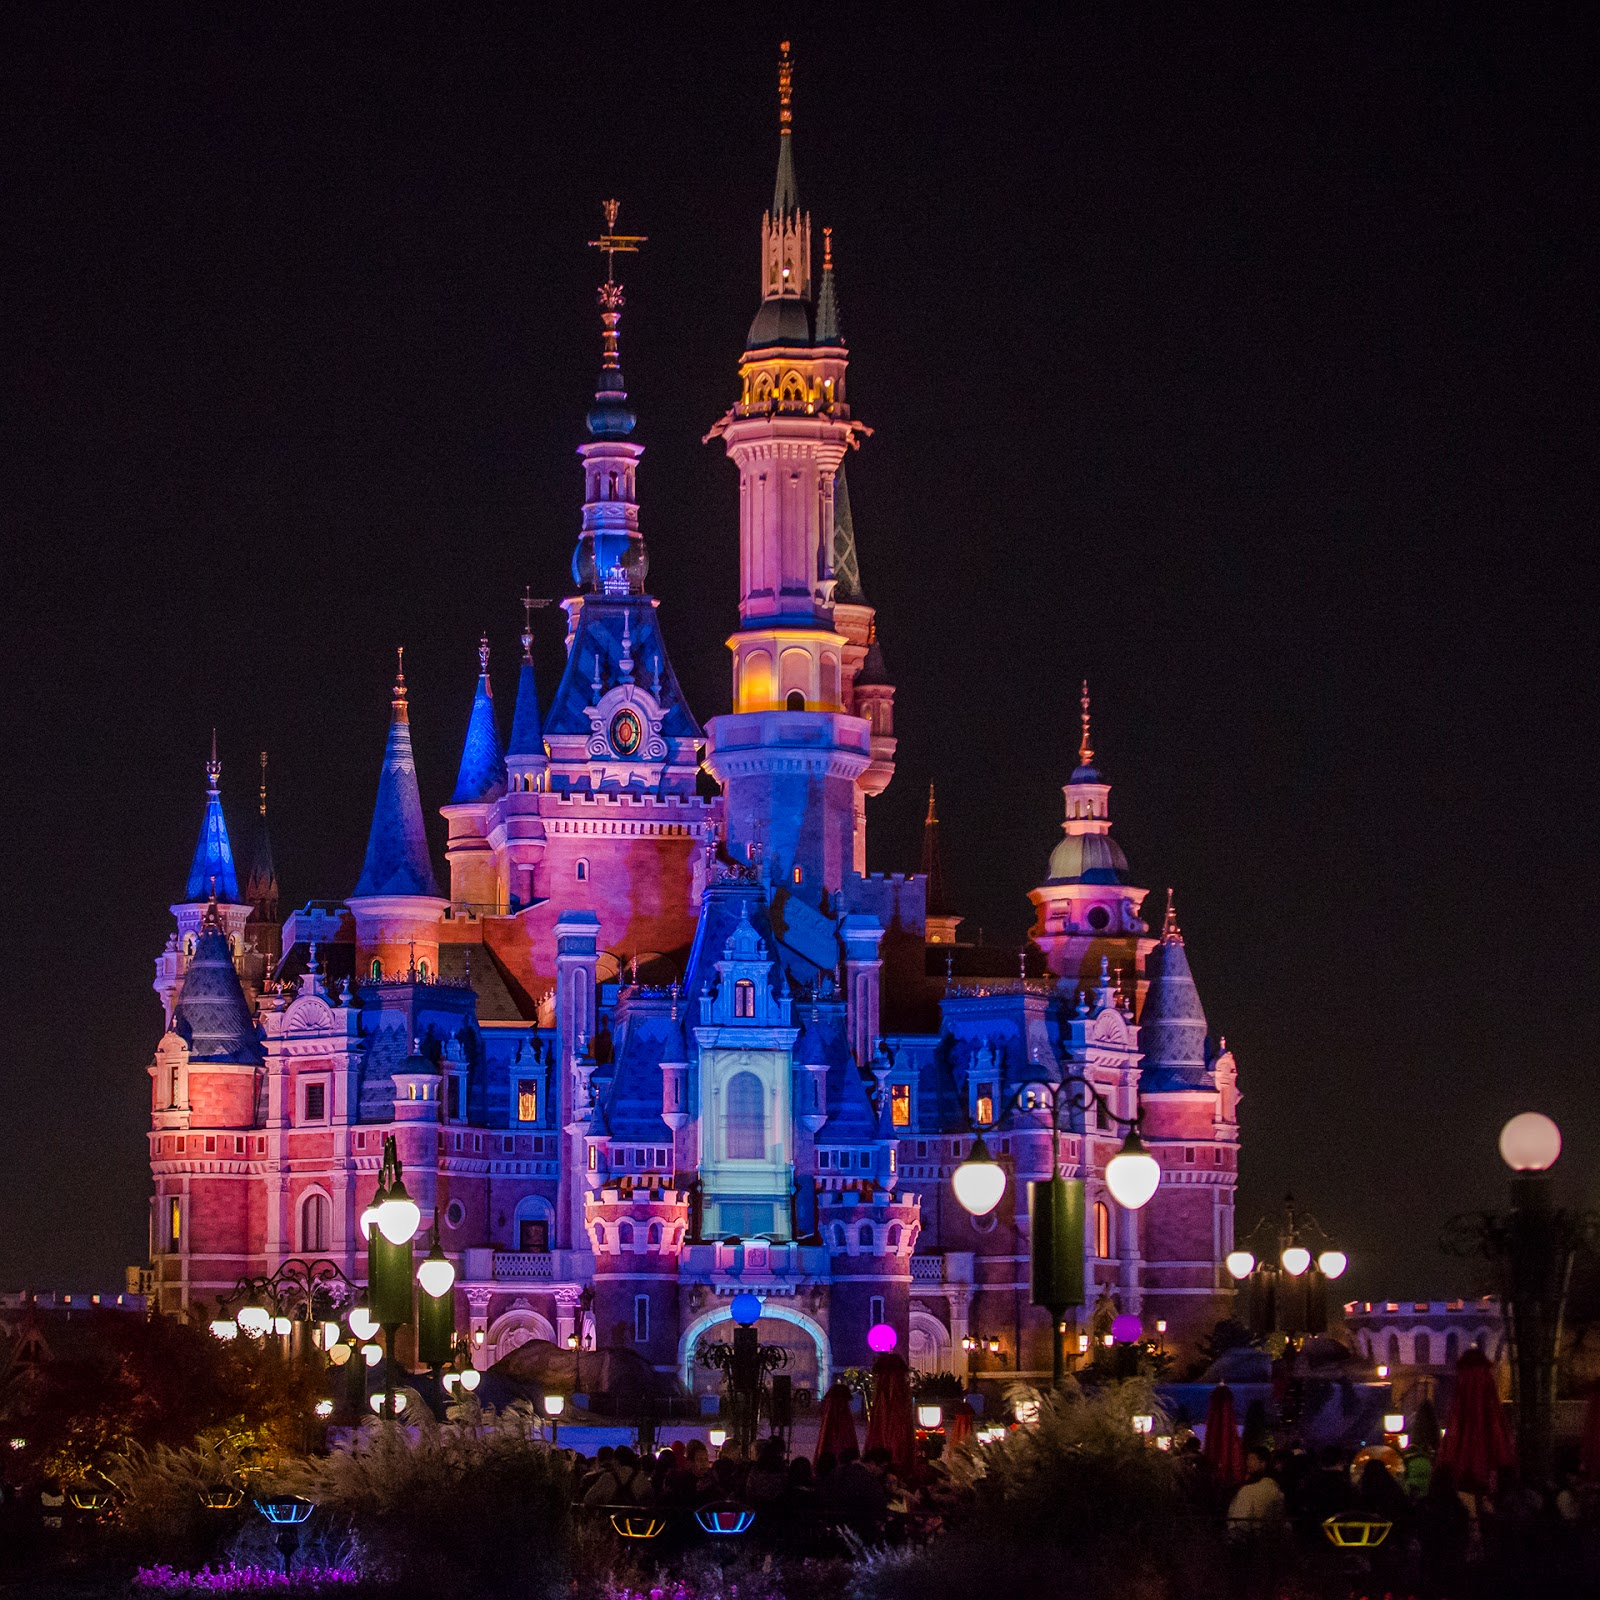 The Enchanted Castle At Night